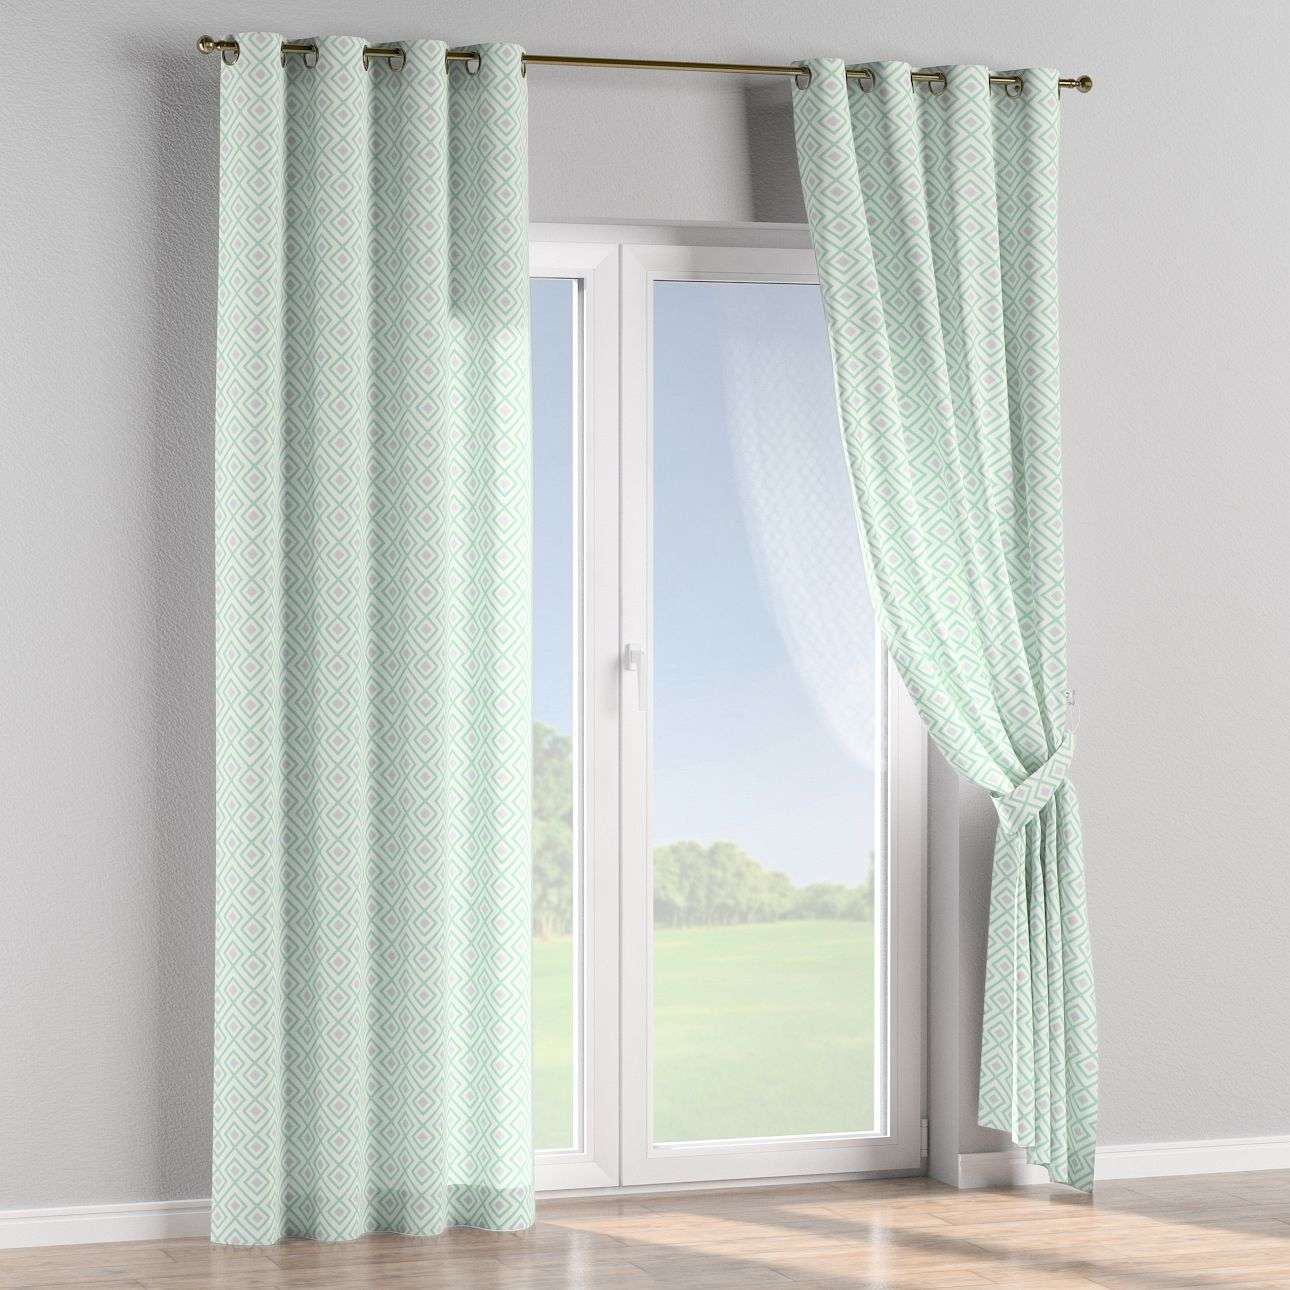 Eyelet curtains 130 x 260 cm (51 x 102 inch) in collection Geometric, fabric: 141-45